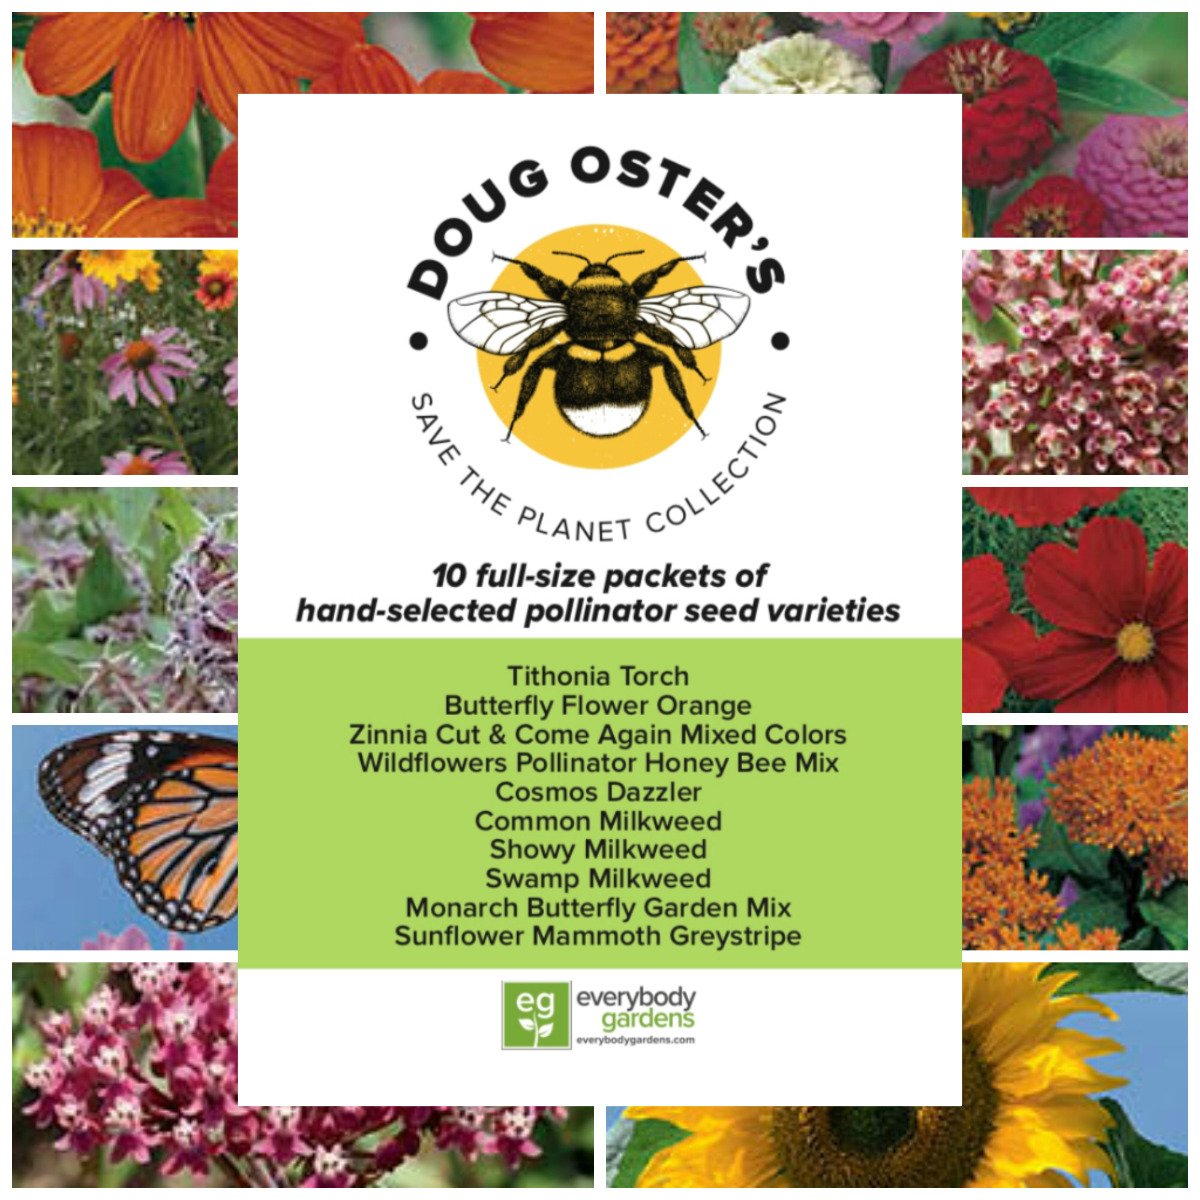 Doug Oster's Save the Planet Seed Collection